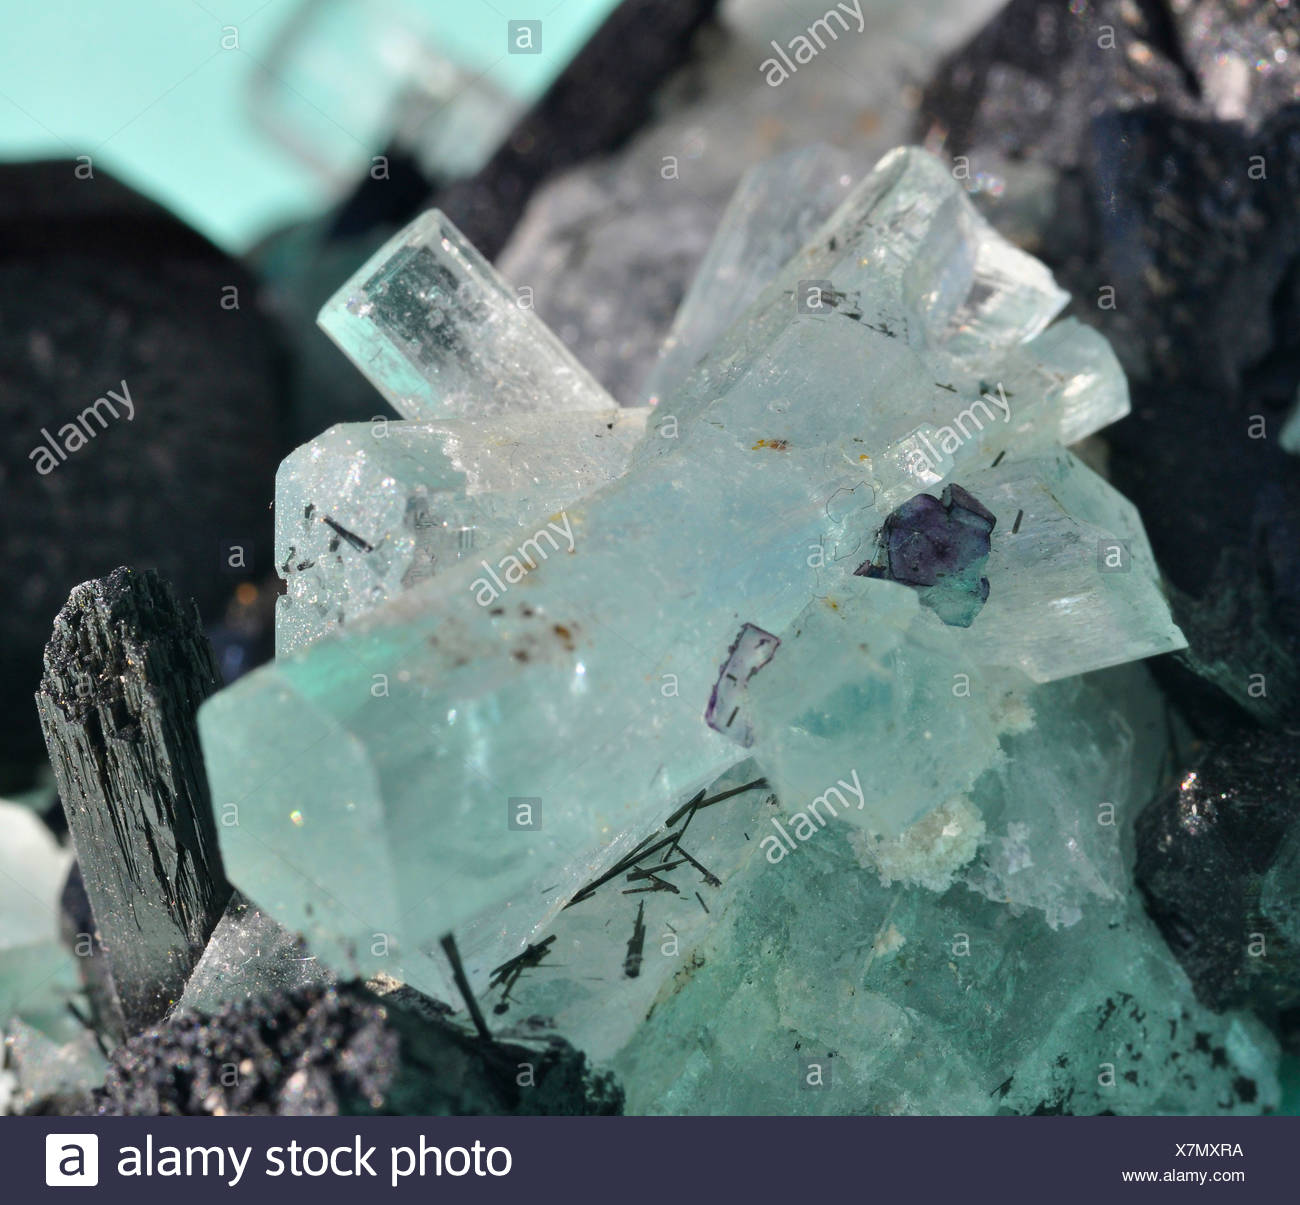 black tourmaline crystals with fluorite crystals - Stock Image